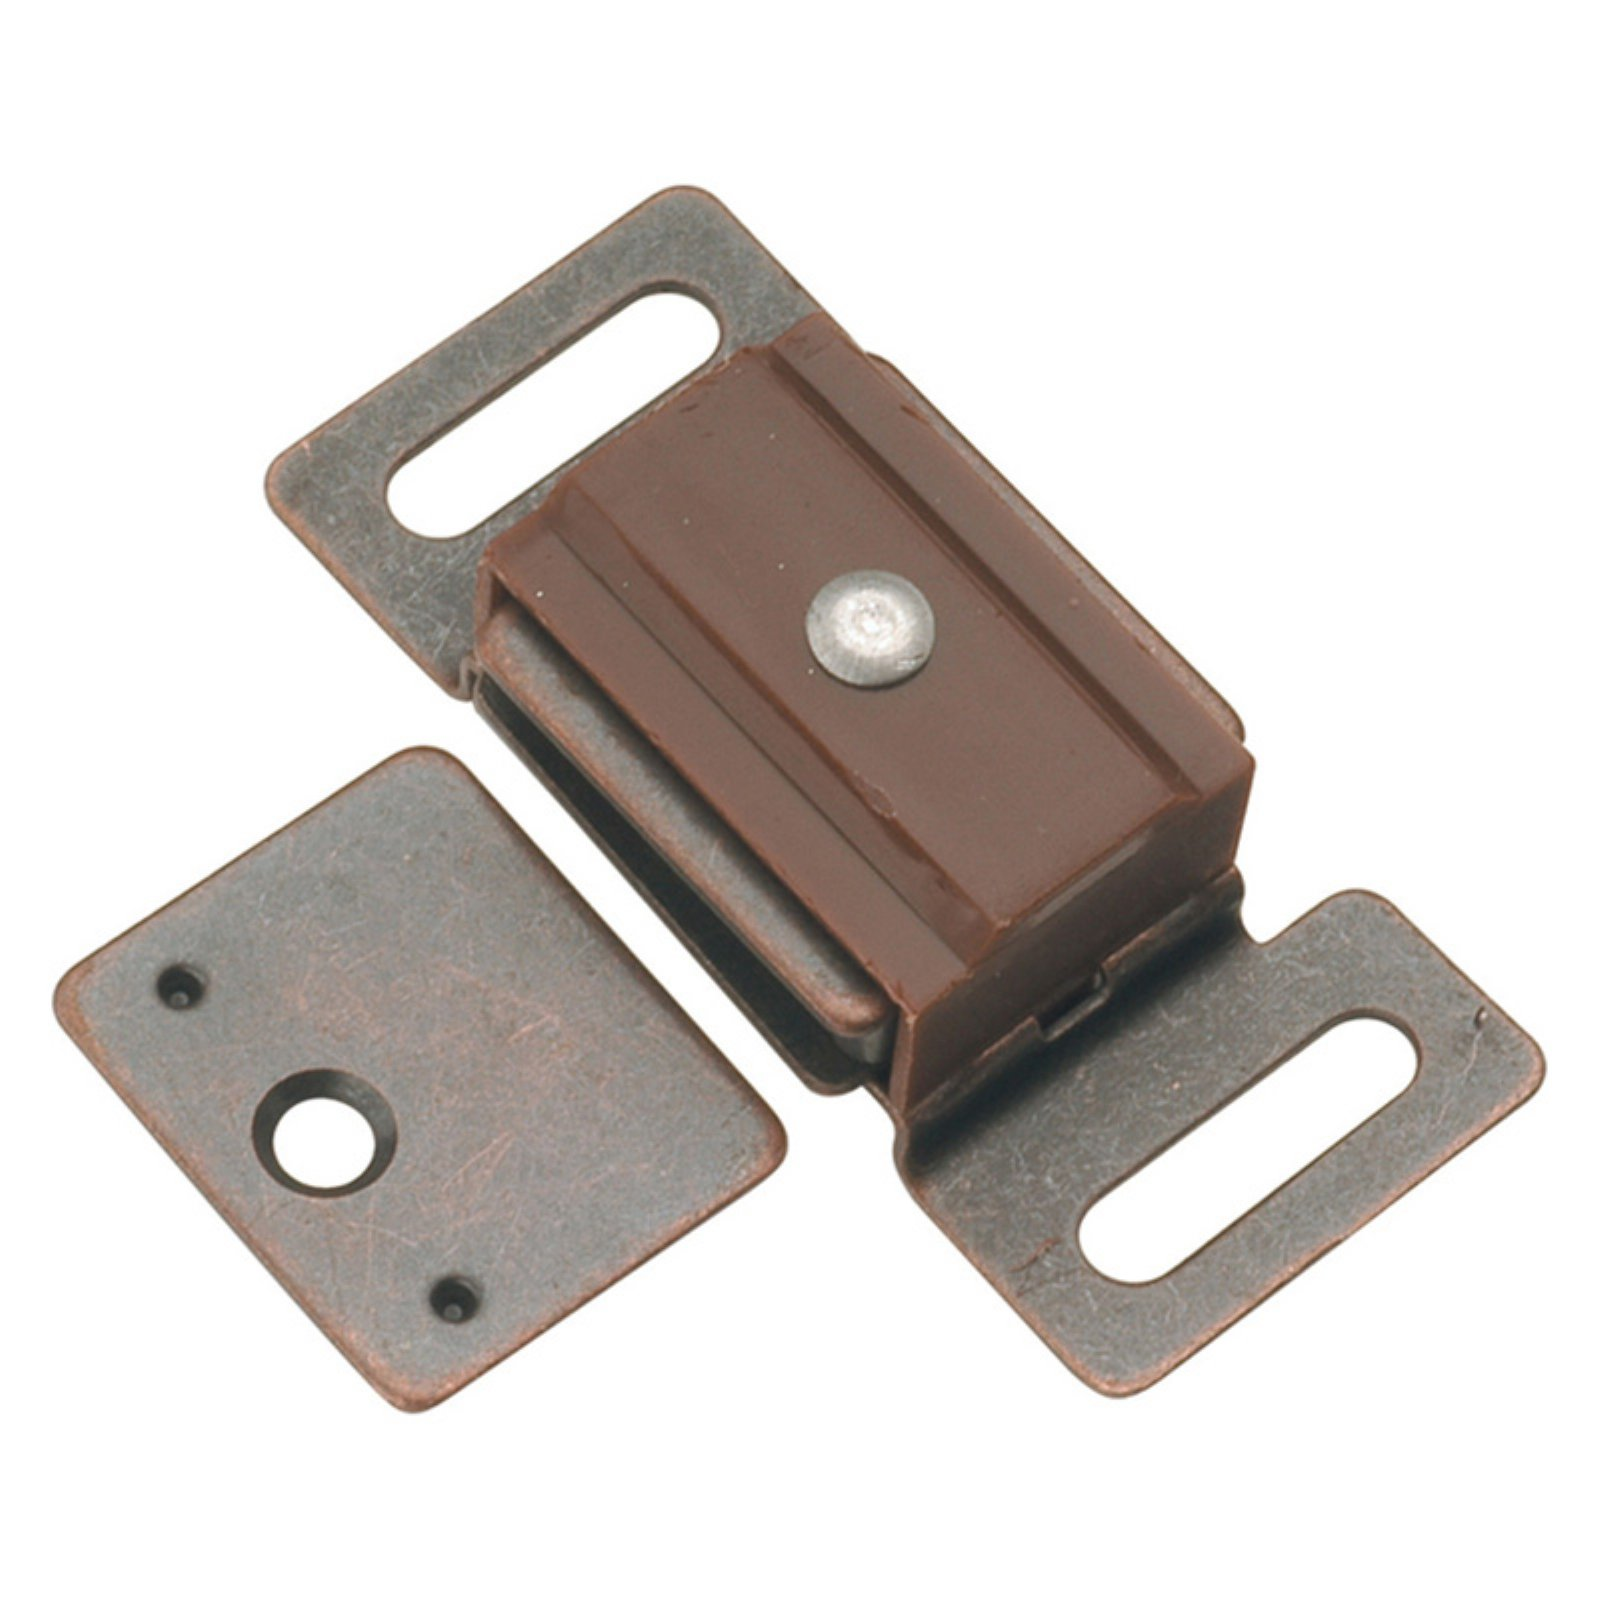 Hickory Hardware Statuary Bronze Magnetic Catch - Set of 2